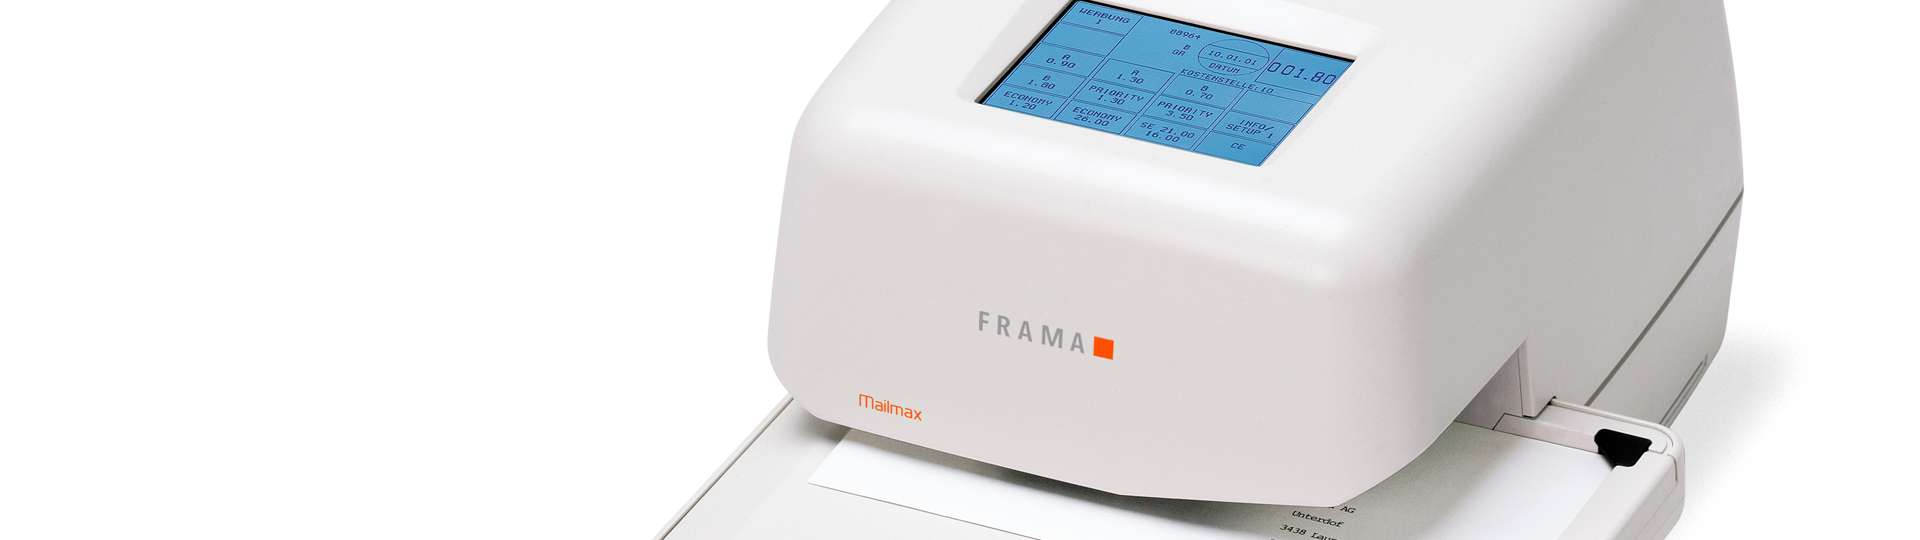 Frama Mailmax I is a intelligent and integrated franking system.